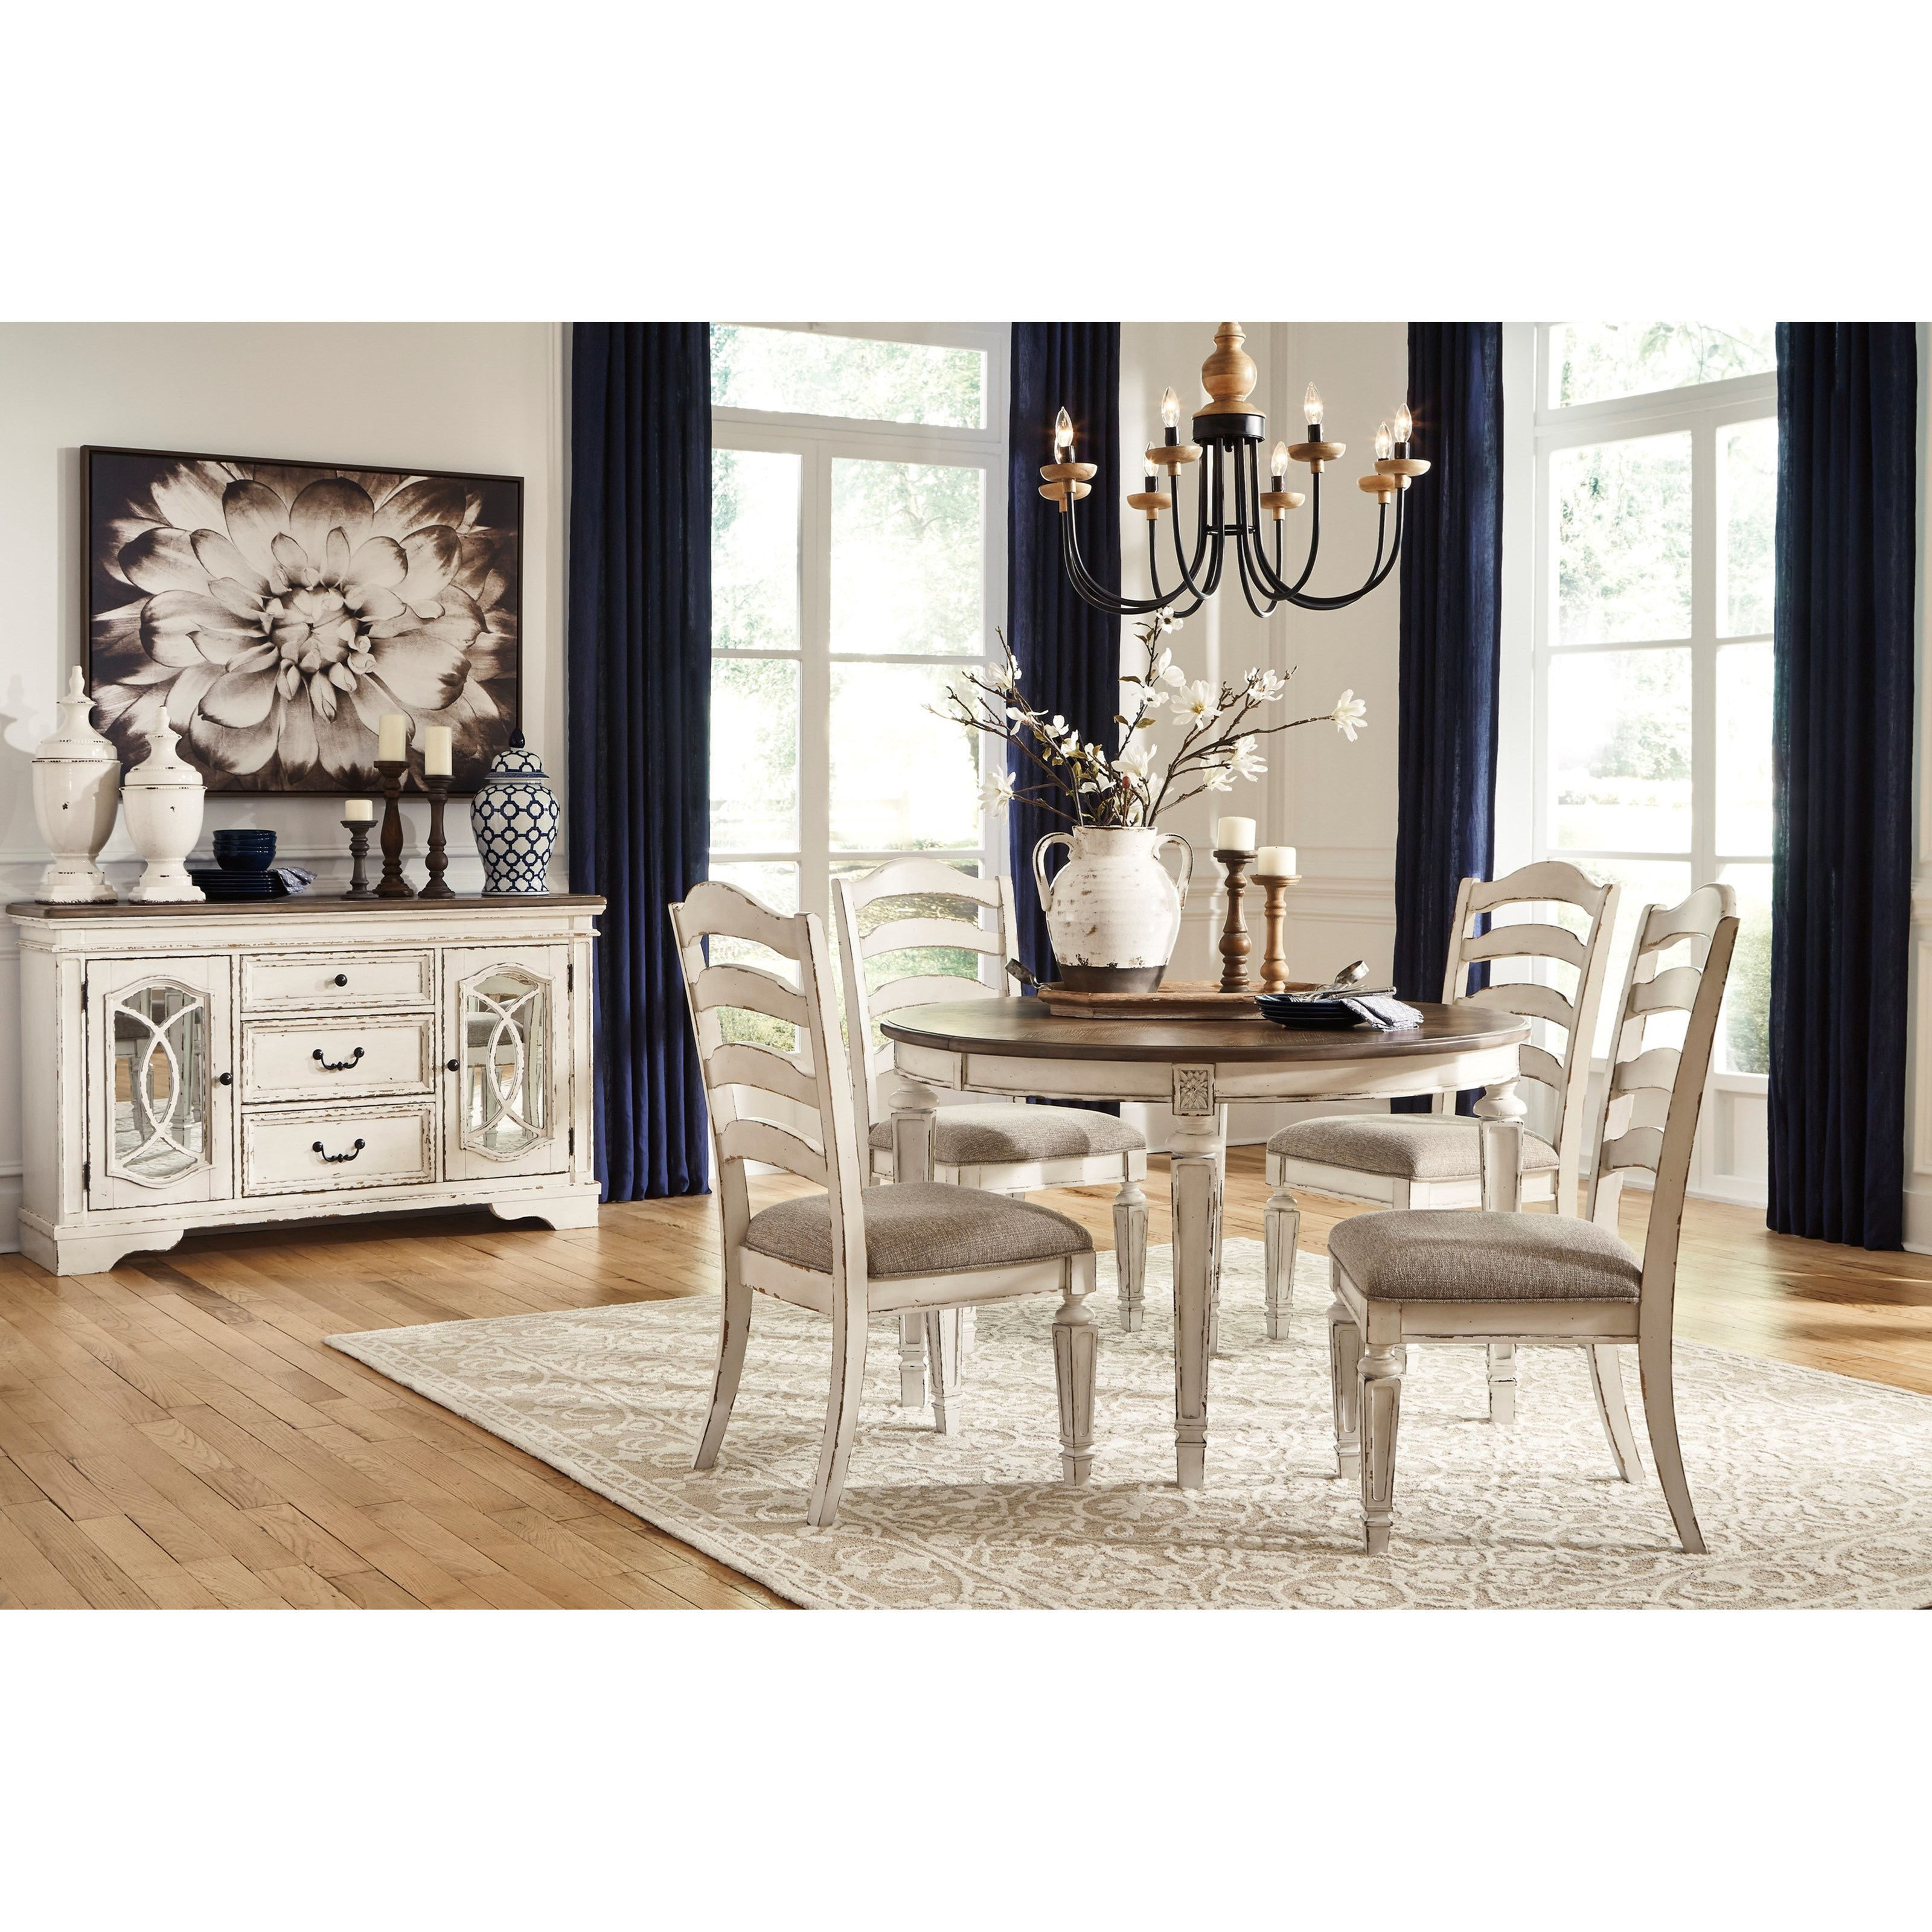 Realyn Casual Dining Room Group by Ashley (Signature Design) at Johnny Janosik